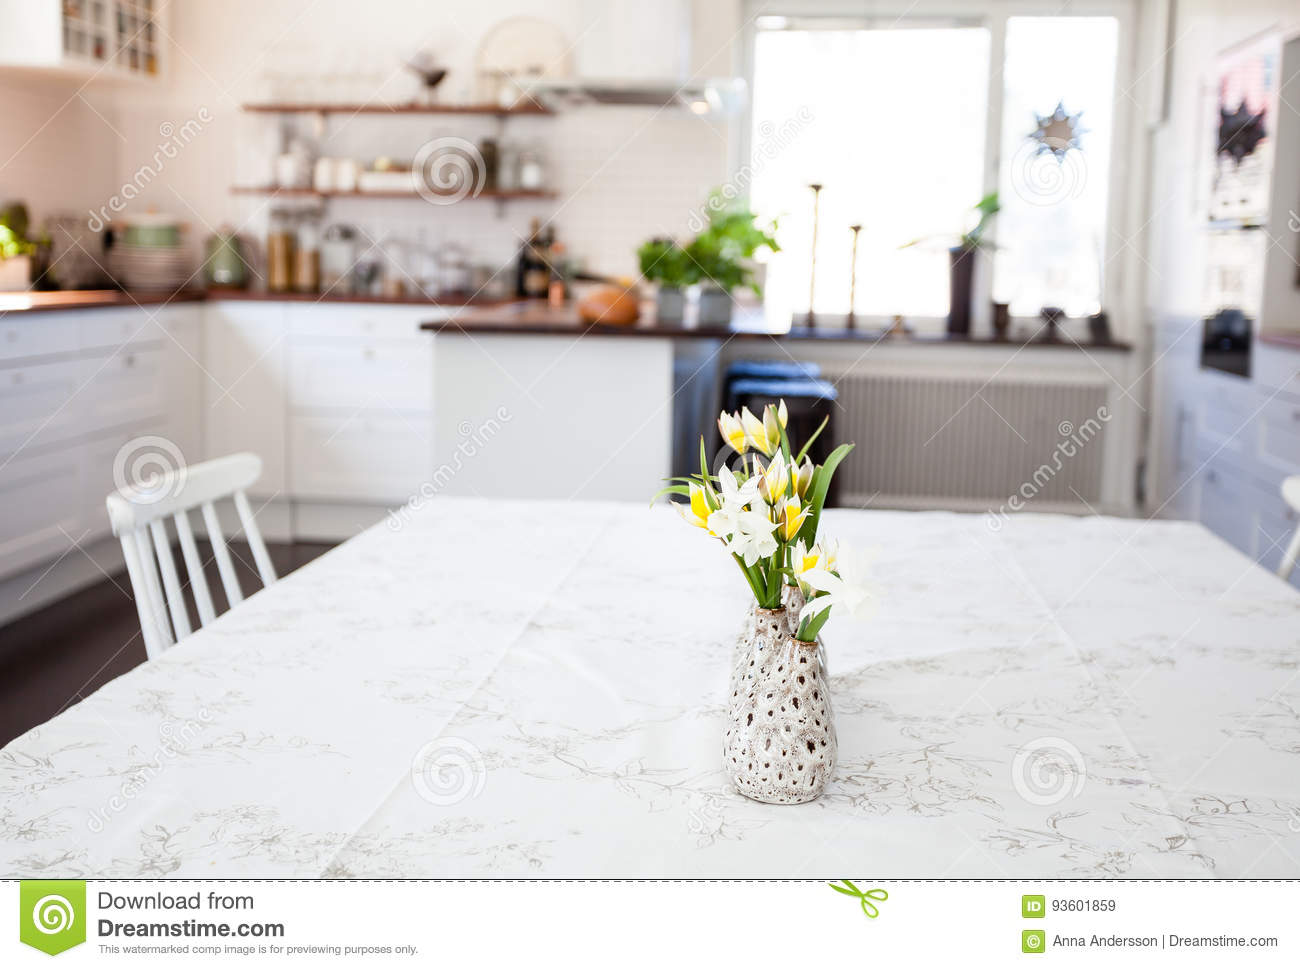 Flowers at the table in the foreground kitchen blurred in the background